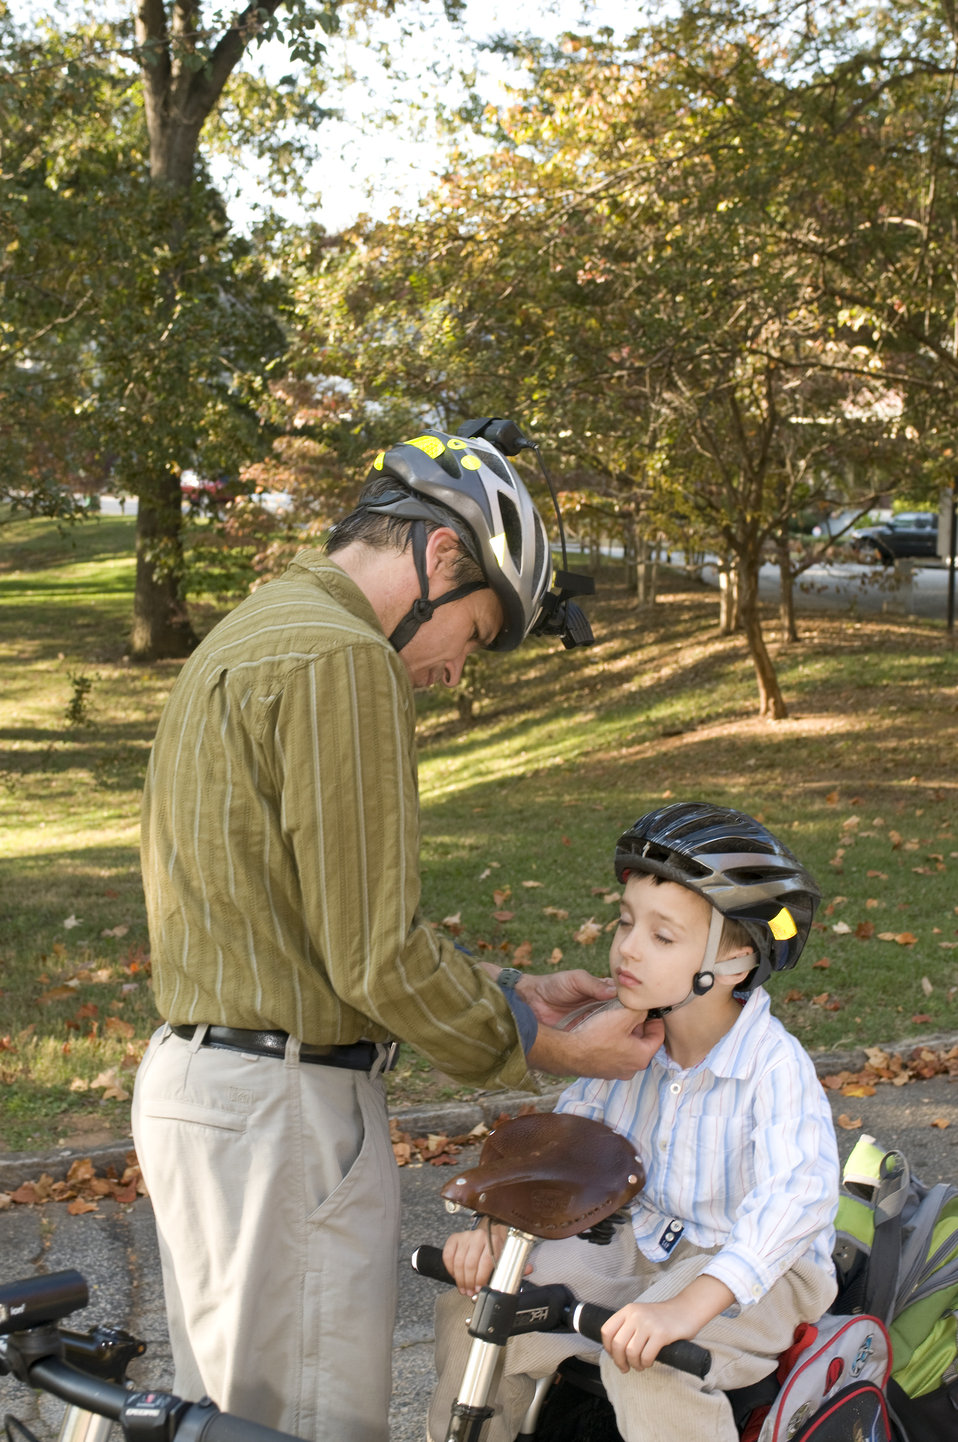 This photograph depicts a father and son about to embark on a beautiful Georgian afternoon bicycle ride. At this point in their preparation,